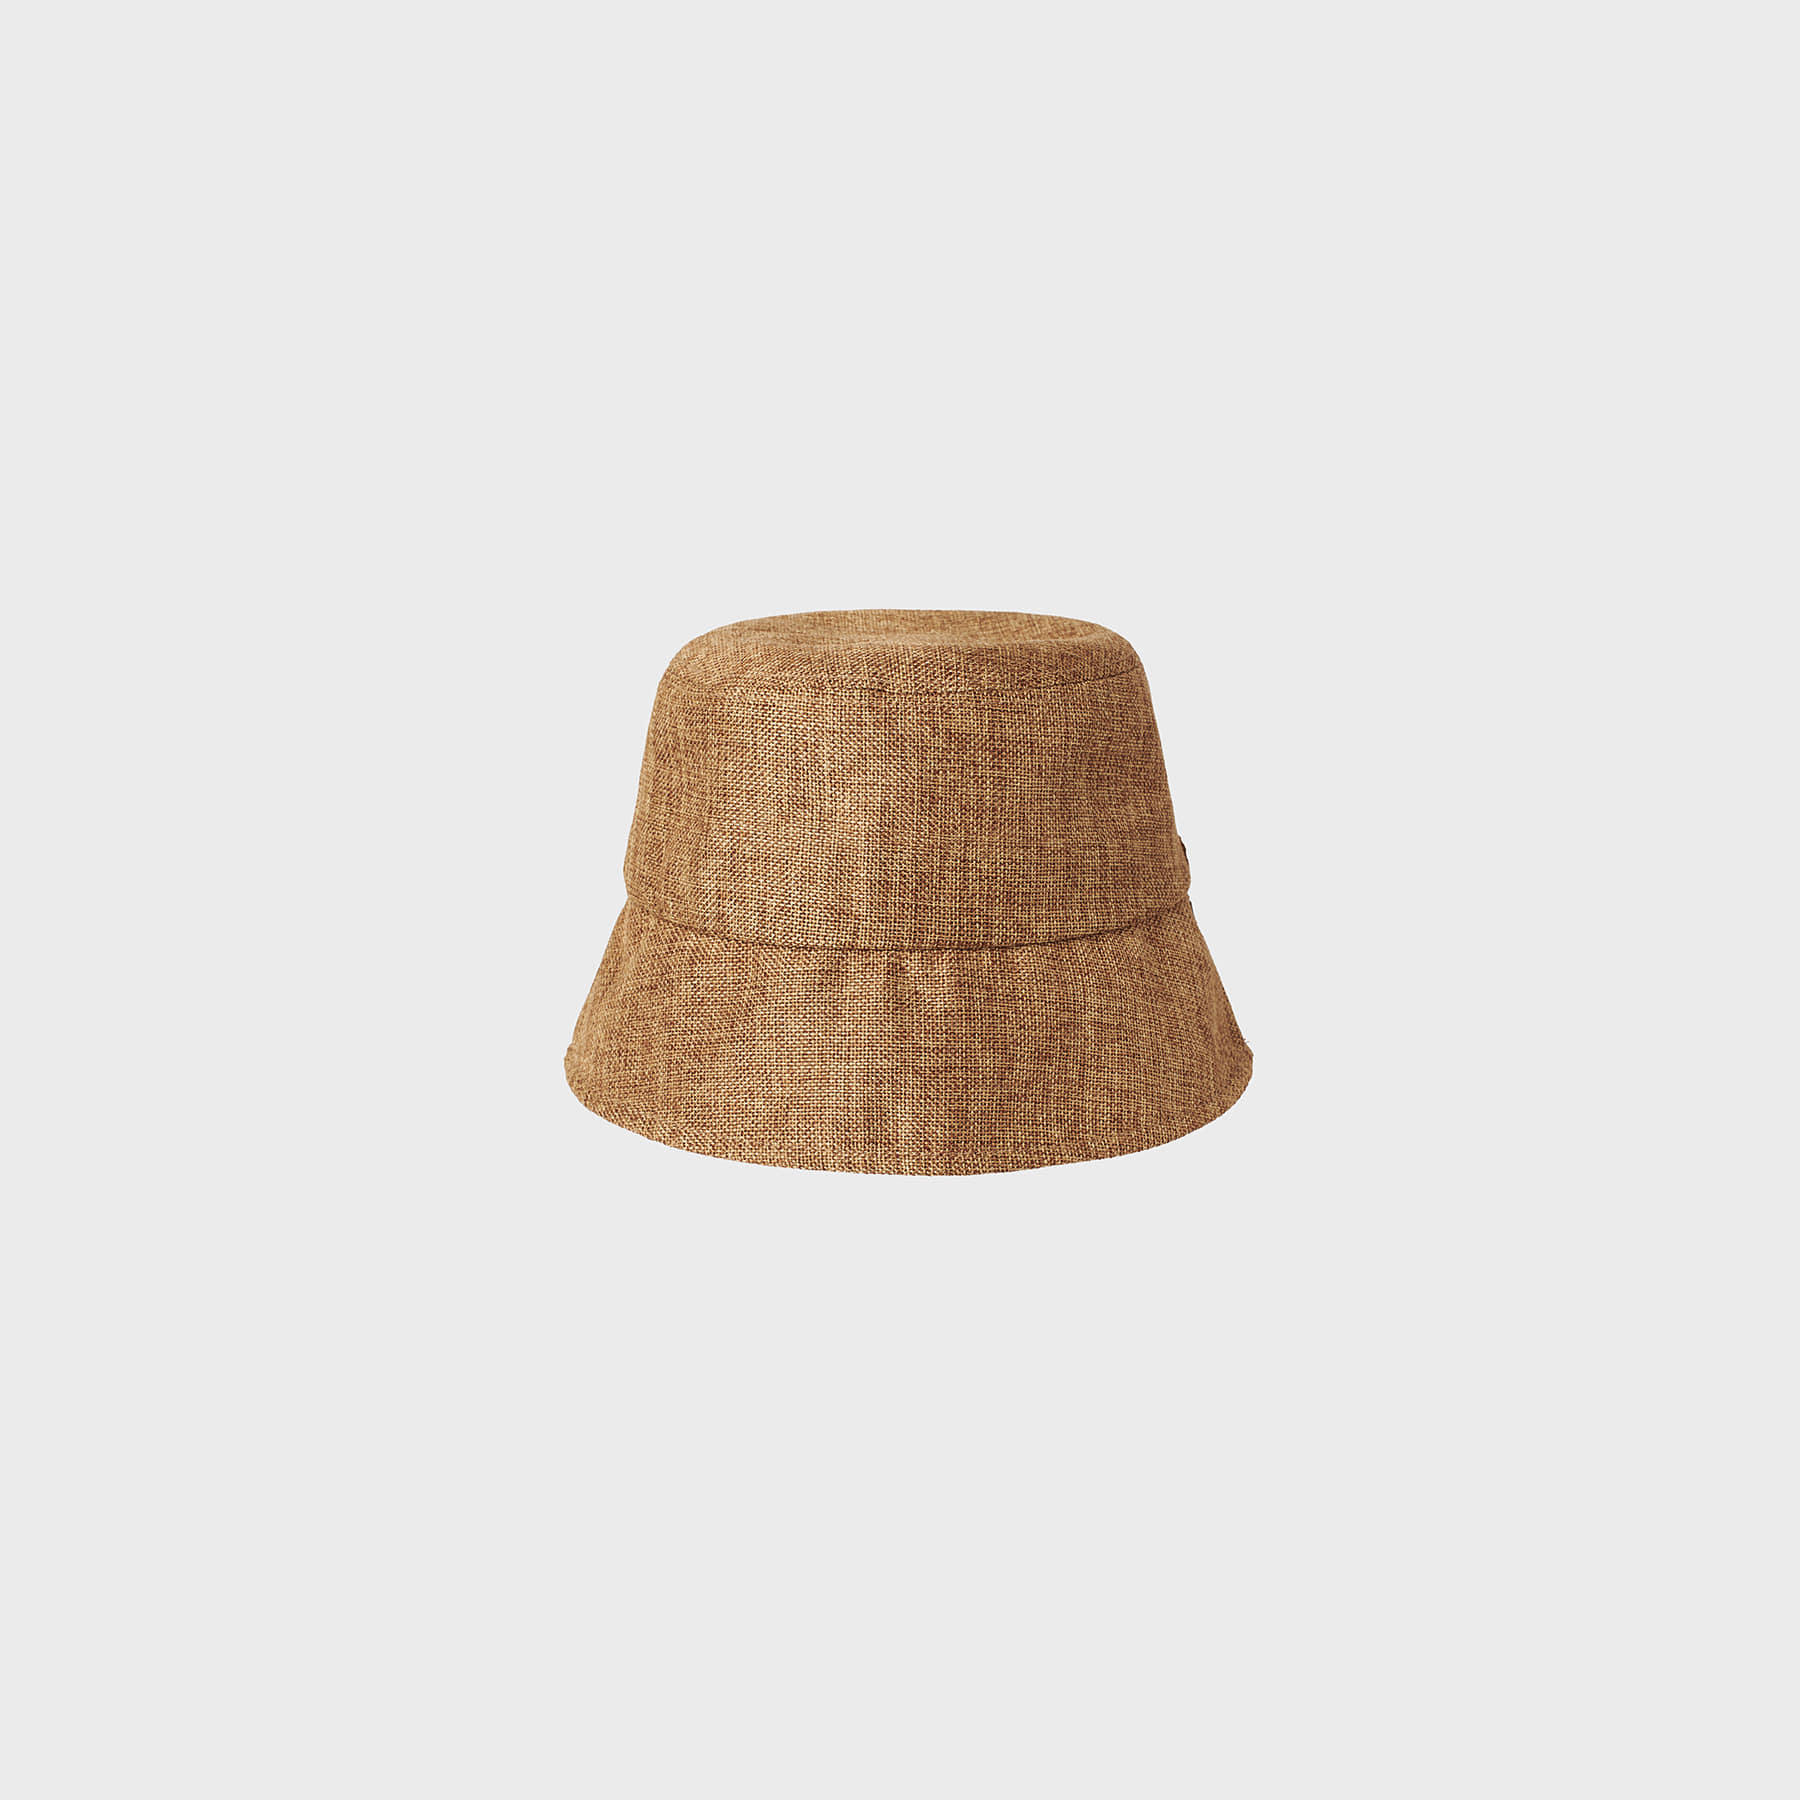 Mini roll hat (brown)